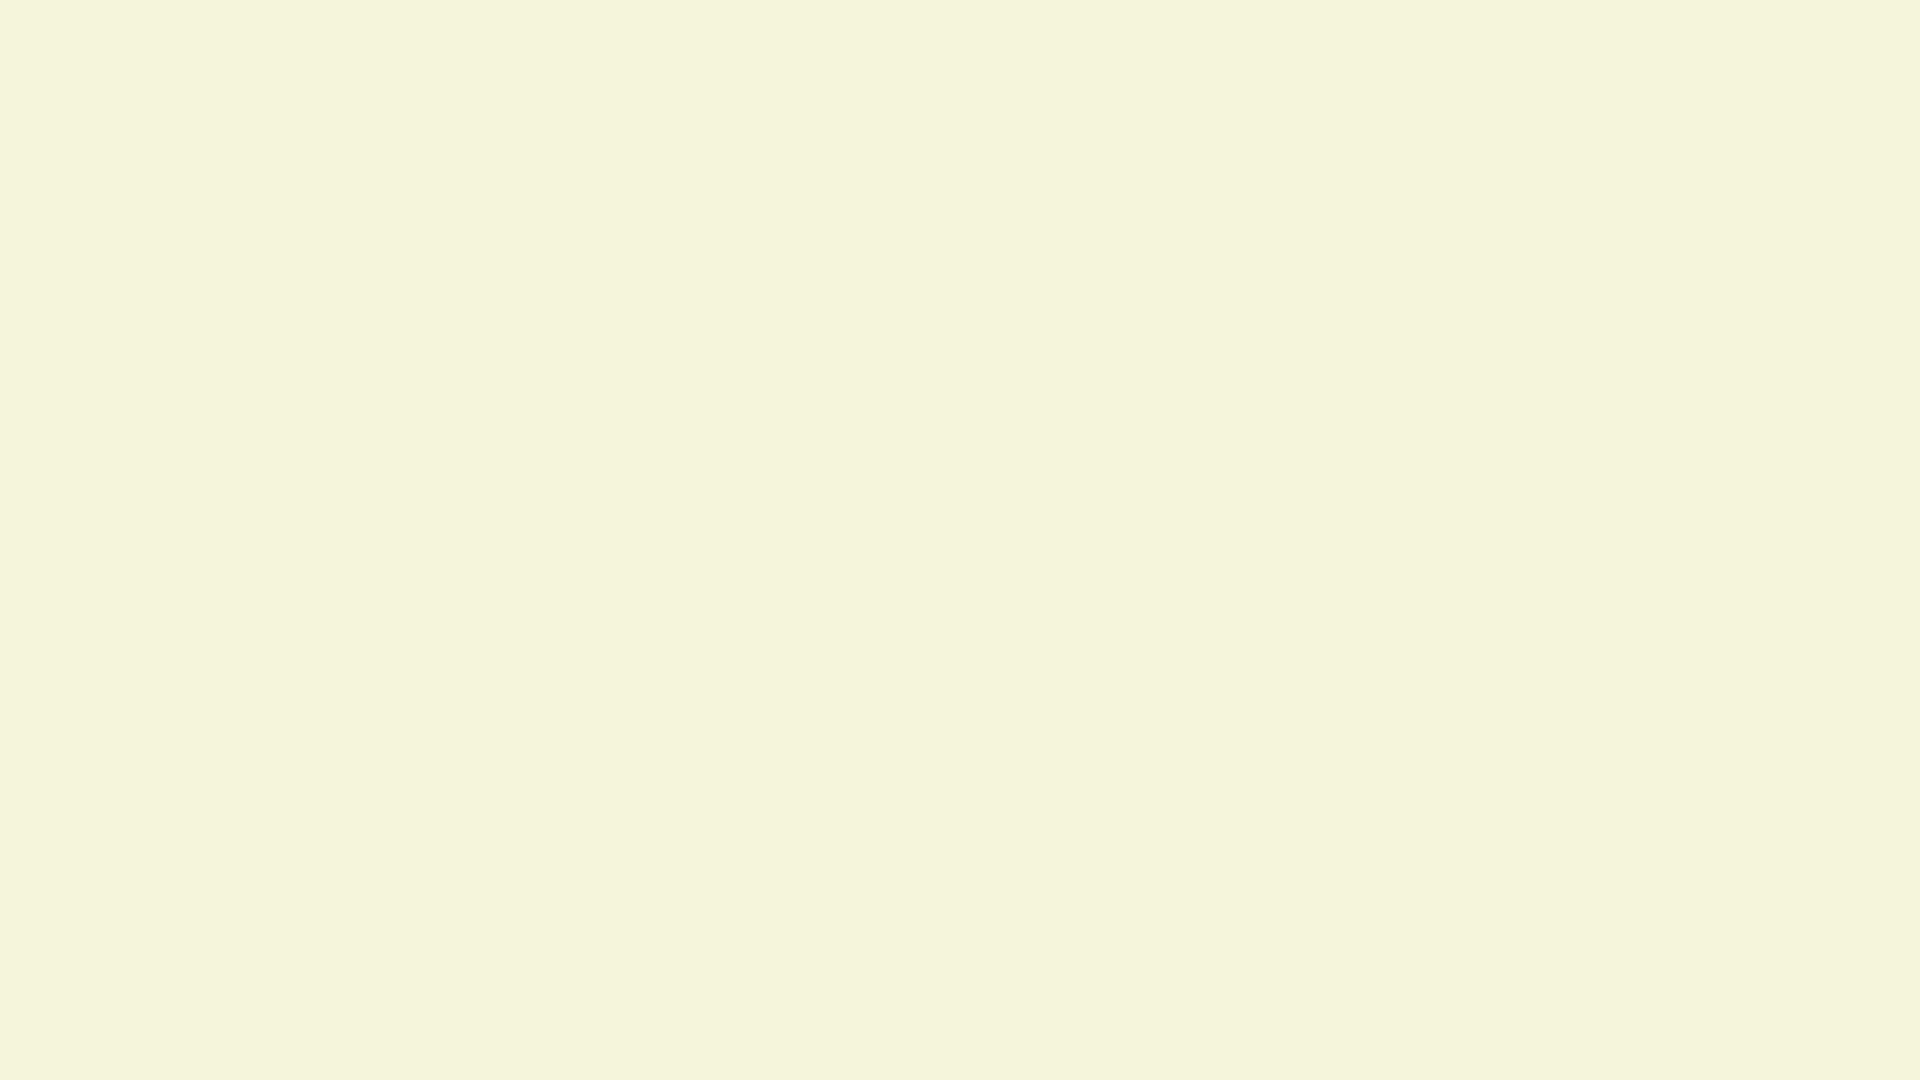 1920x1080 Beige Solid Color Background